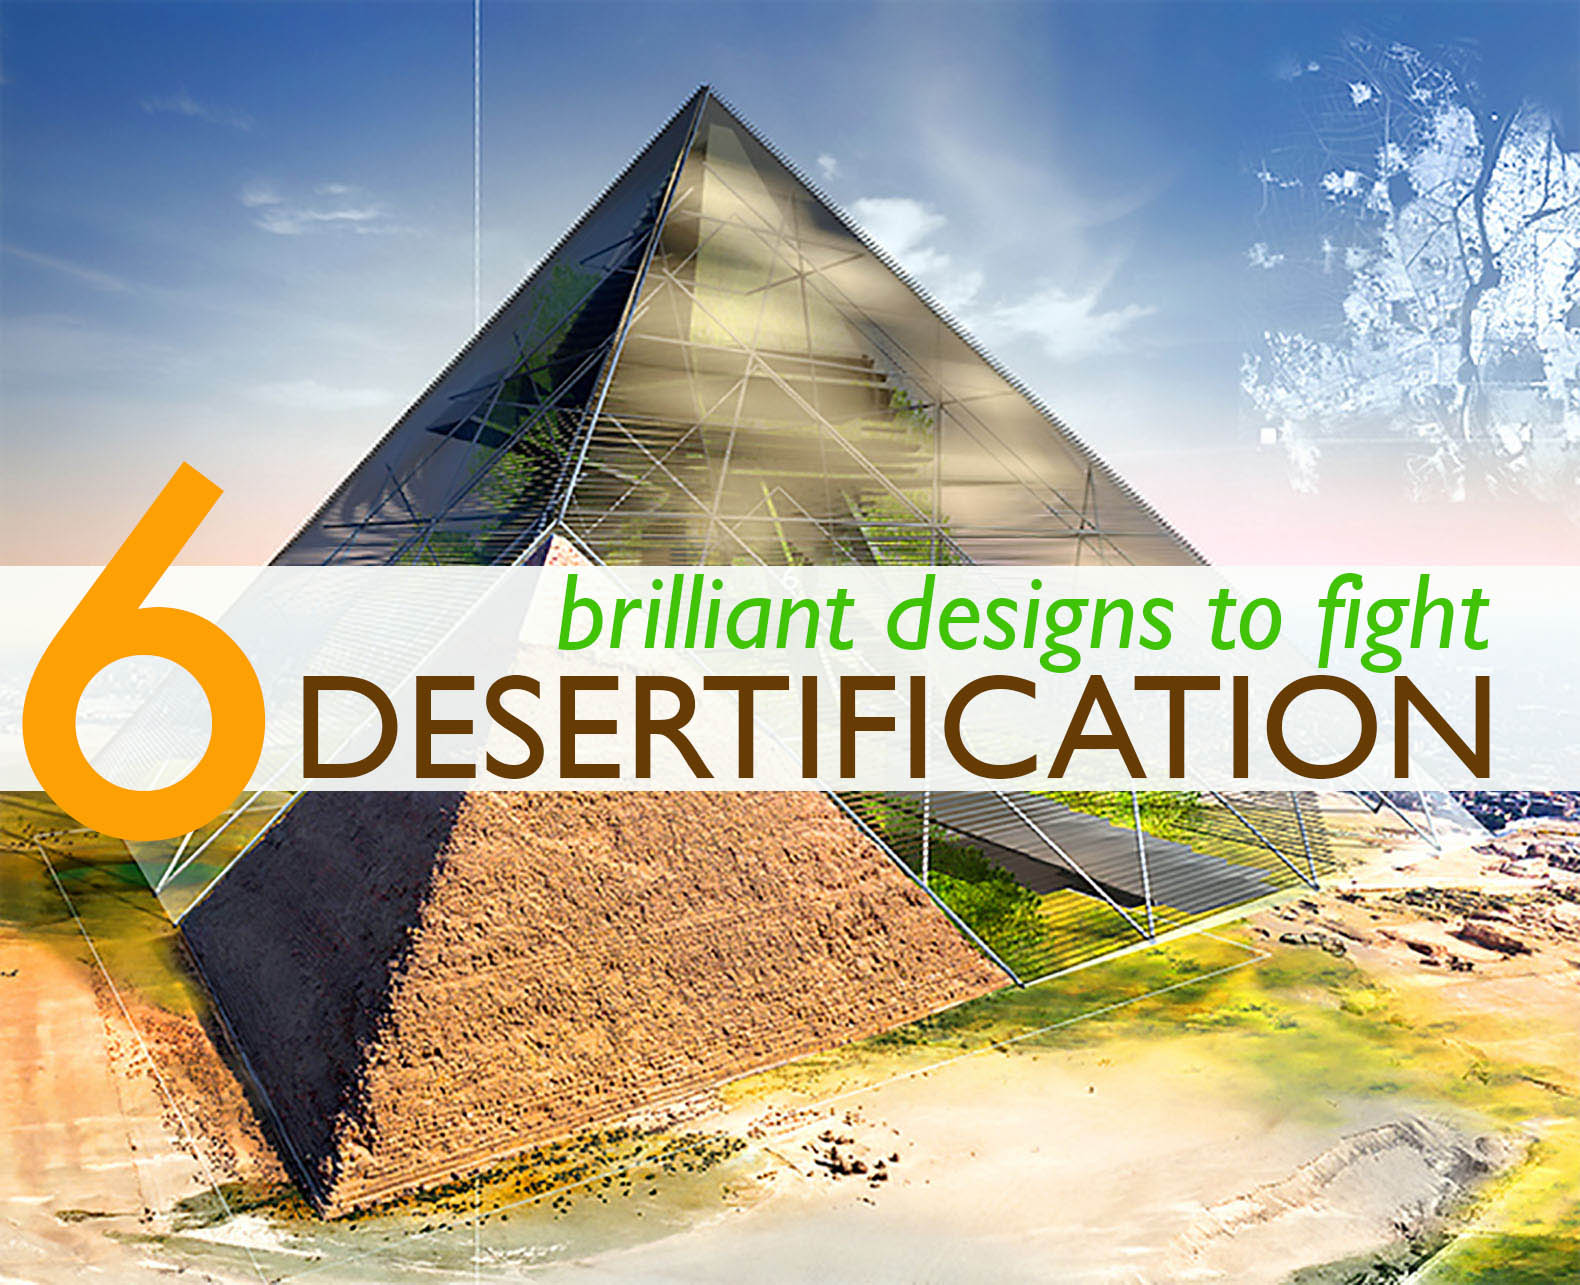 In The Desert clipart desertification Trees Can Waterboxx Can waterboxx